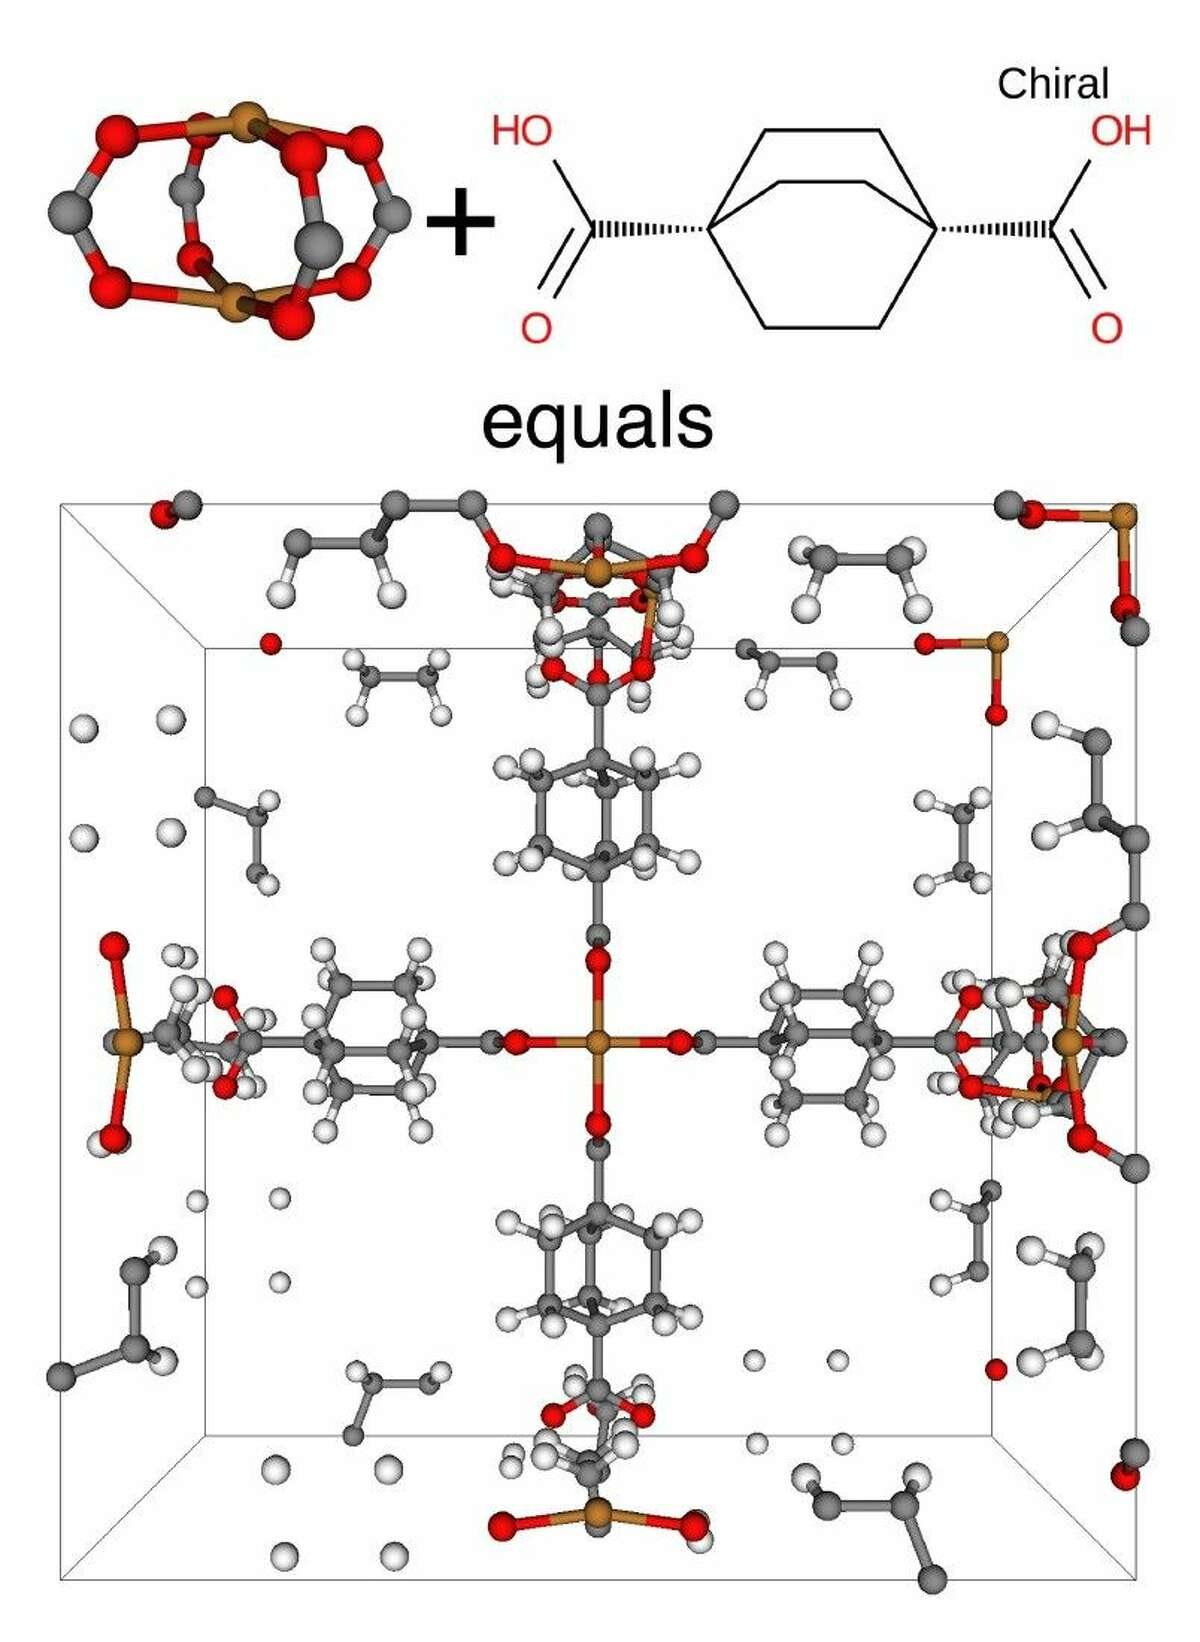 These examples of metal organic frameworks, which may be suitable for natural gas storage, were discovered through a computer algorithm developed at Rice University. The program explores possible combinations of components that may be used to synthesize the compounds. In these illustrations, molecules known as secondary building units (top left) and organic binding ligands, or linkers (top right) can be used in a chemical process to produce the metal organic framework seen at the bottom, according to the program.